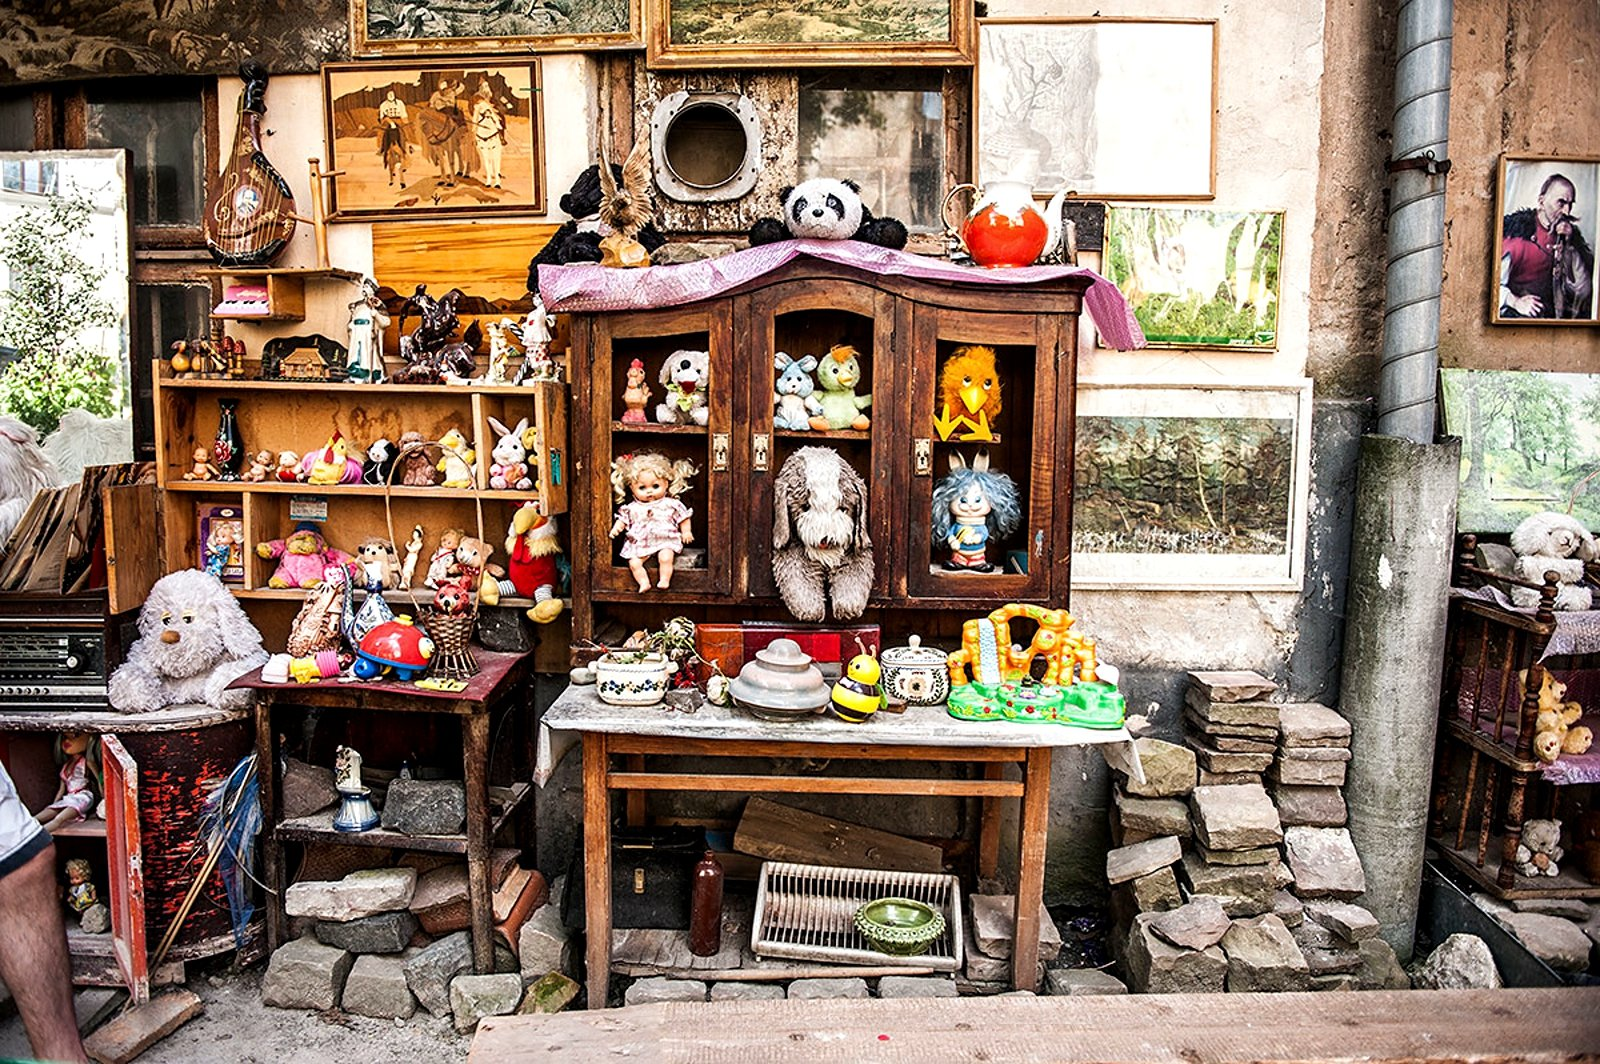 How to find the yard of lost toys in Lviv